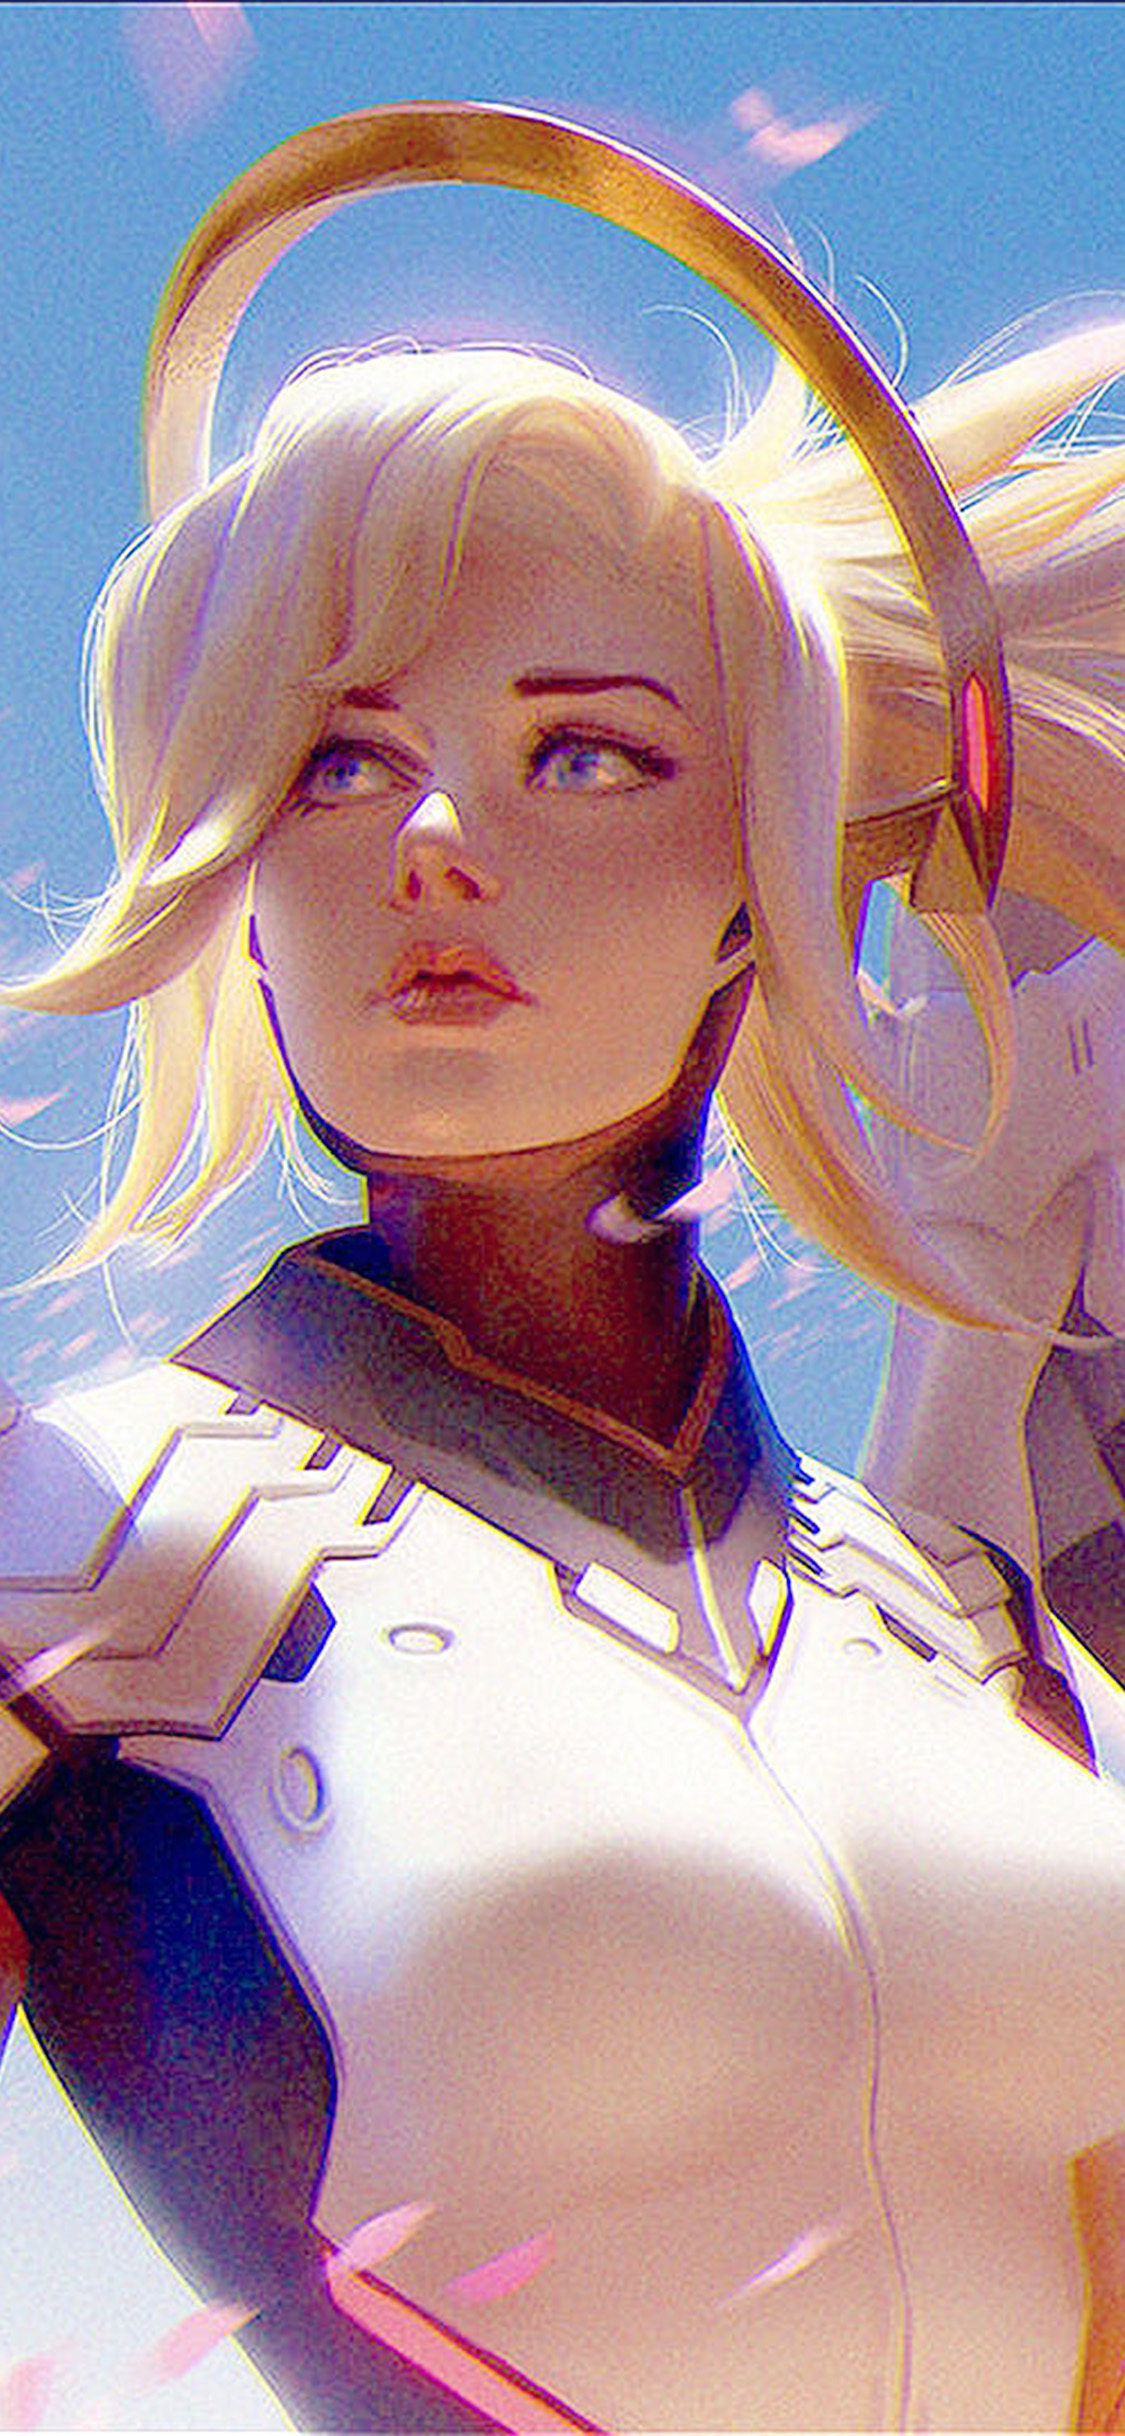 iPhonexpapers.com-Apple-iPhone-wallpaper-bc96-anime-game-overwatch-merci-girl-art-illustration